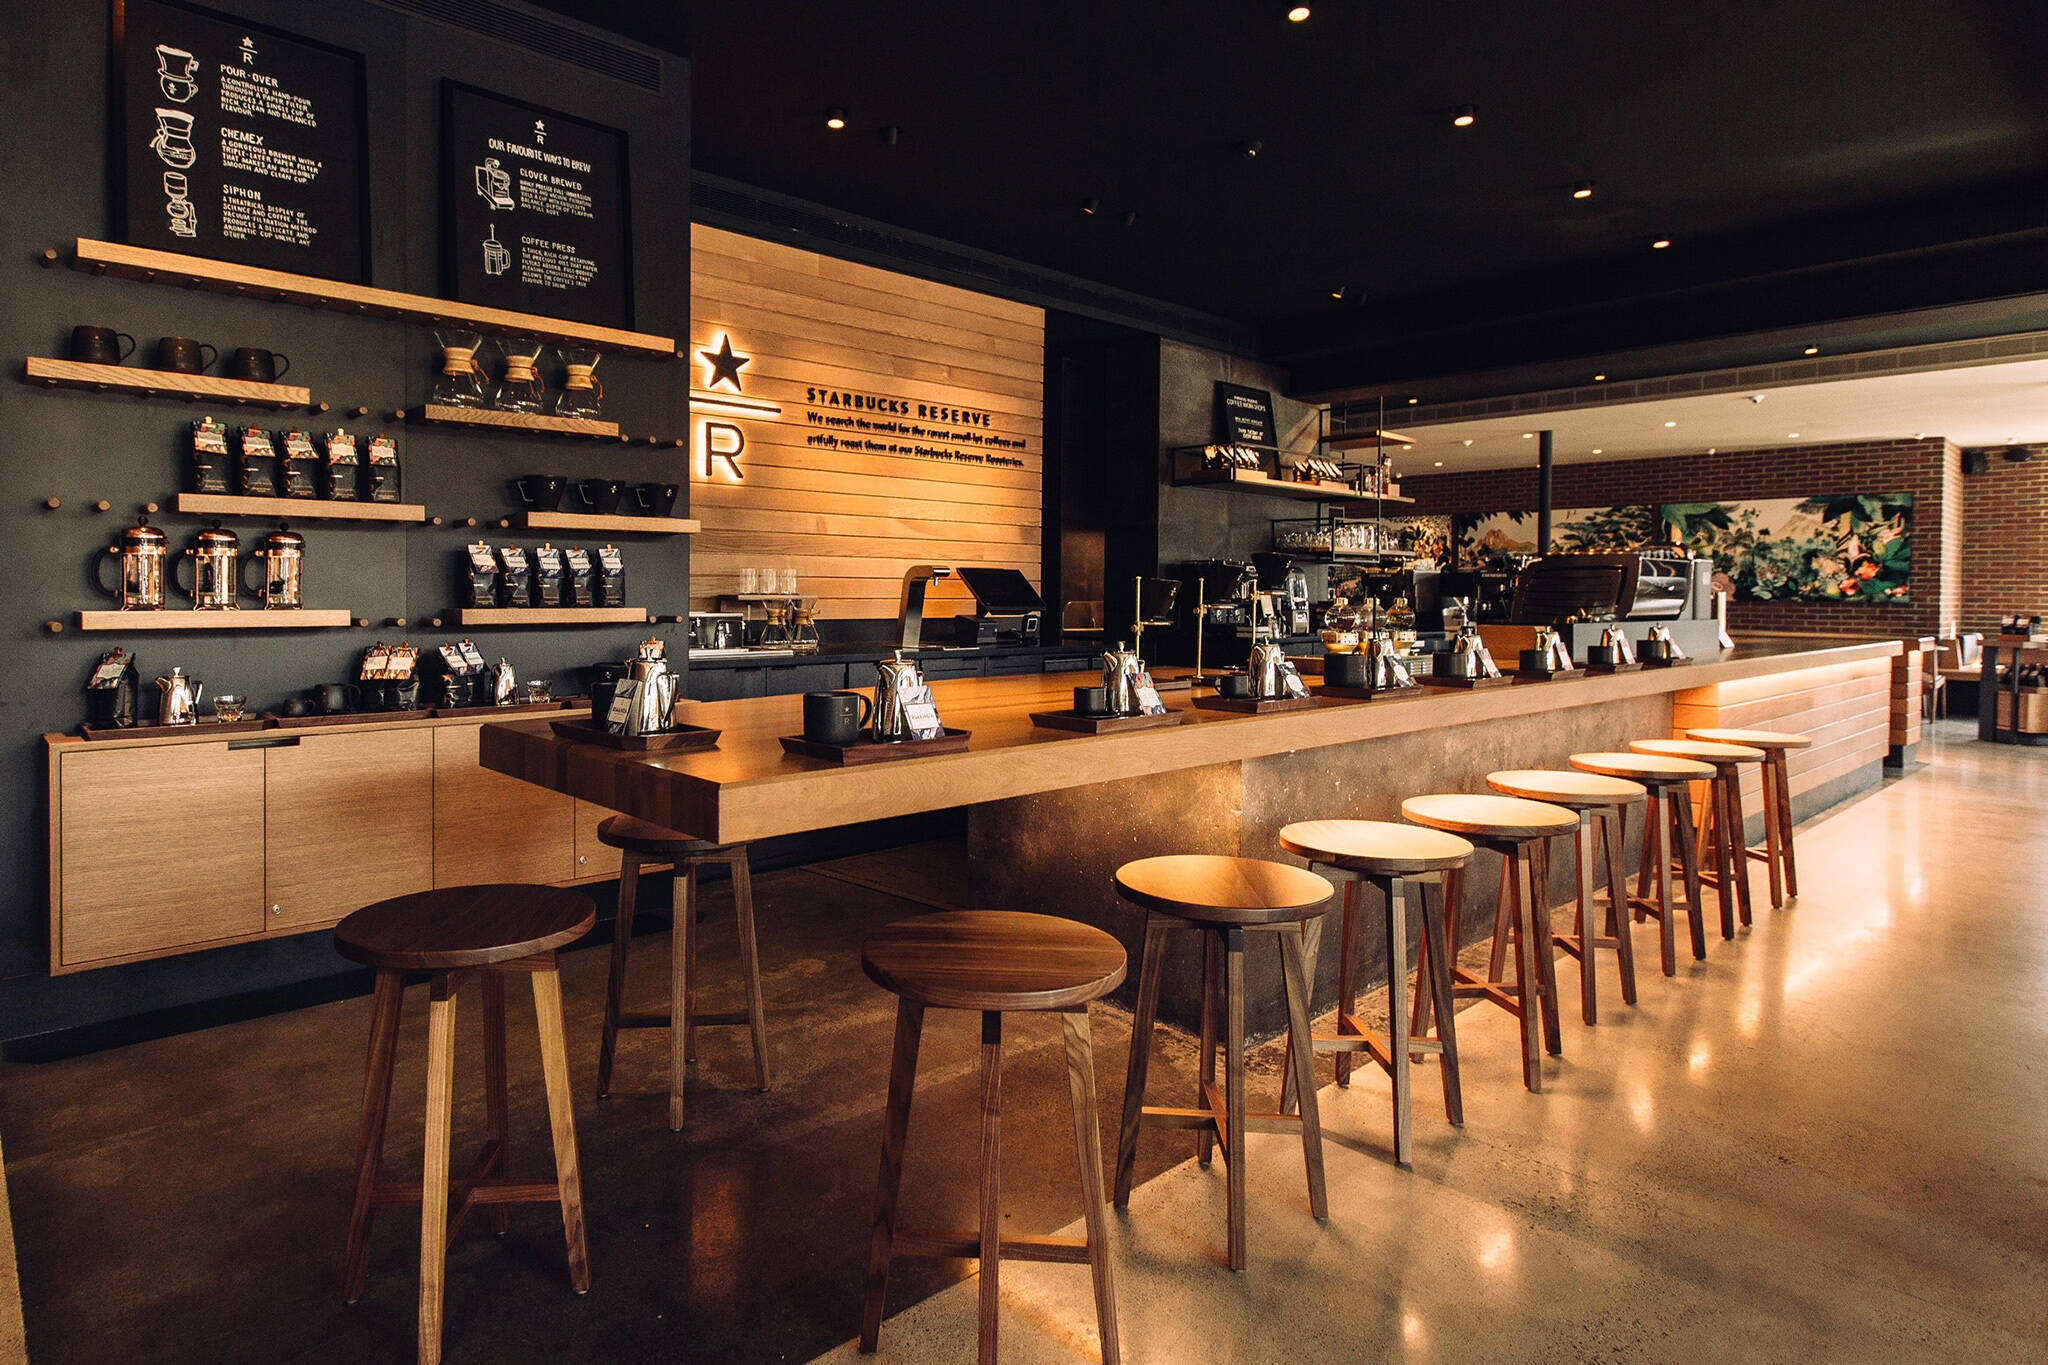 Starbucks Opening Its First Reserve Coffee Bar In Toronto